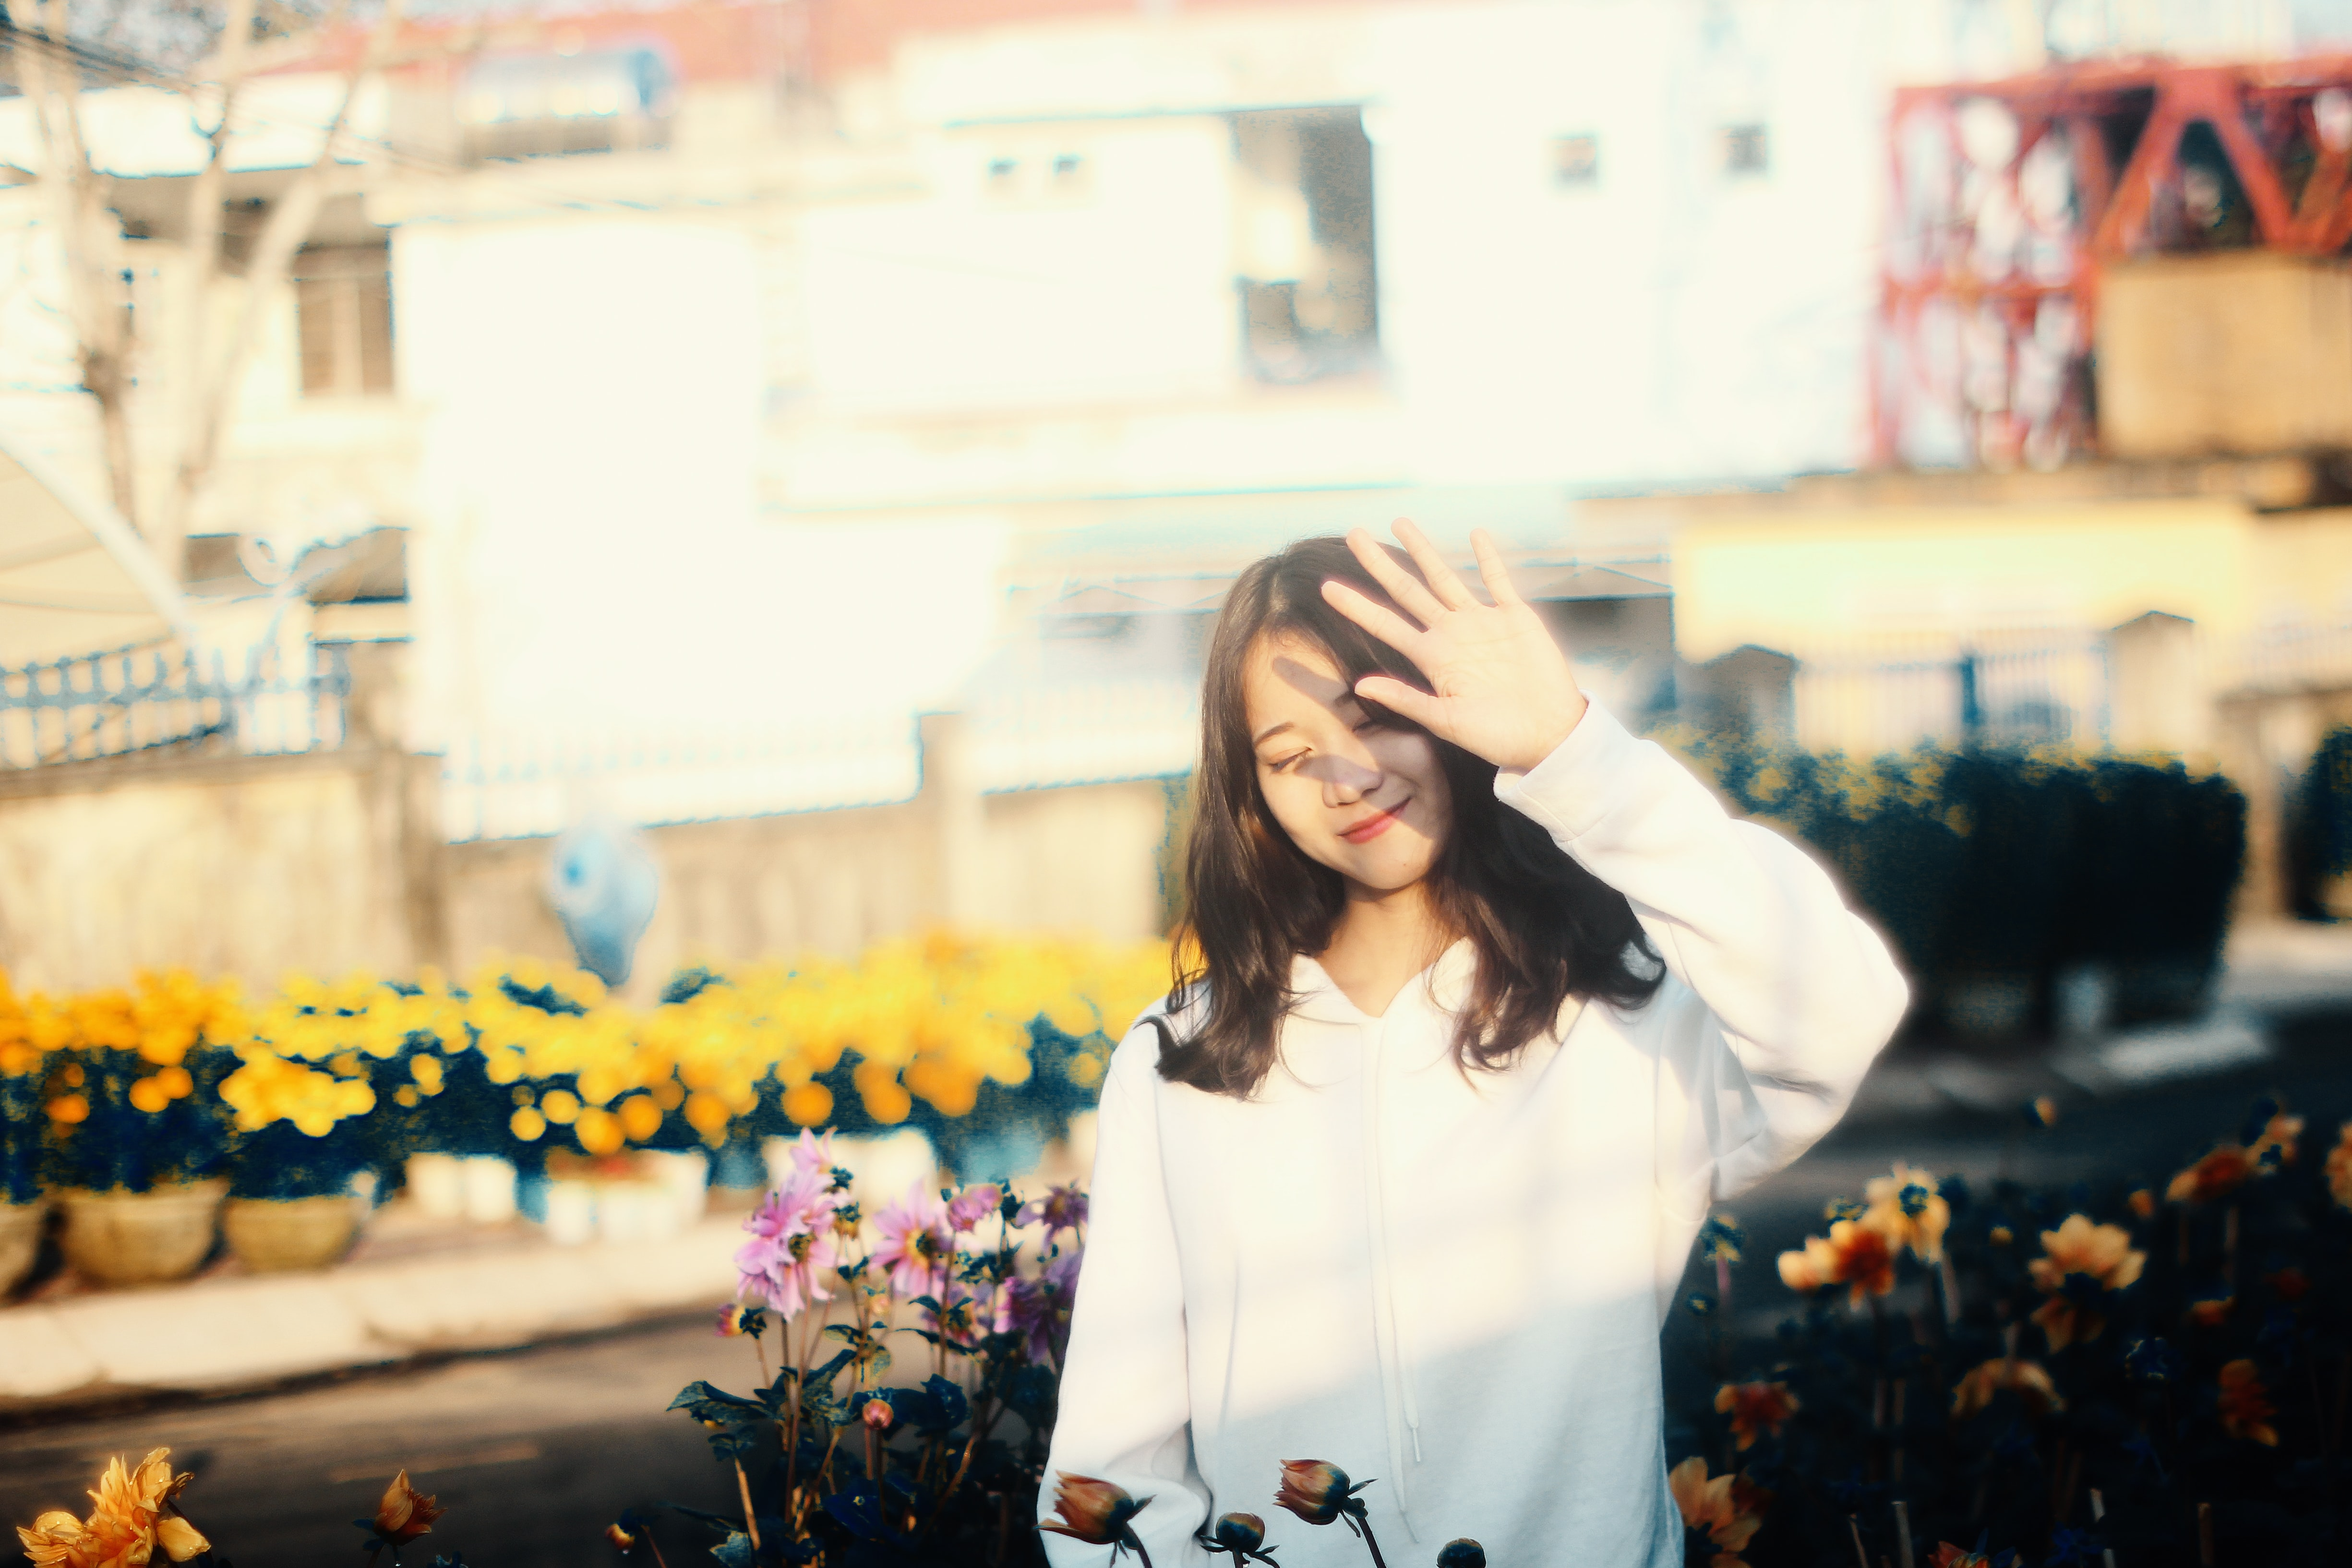 woman at the flower garden during day